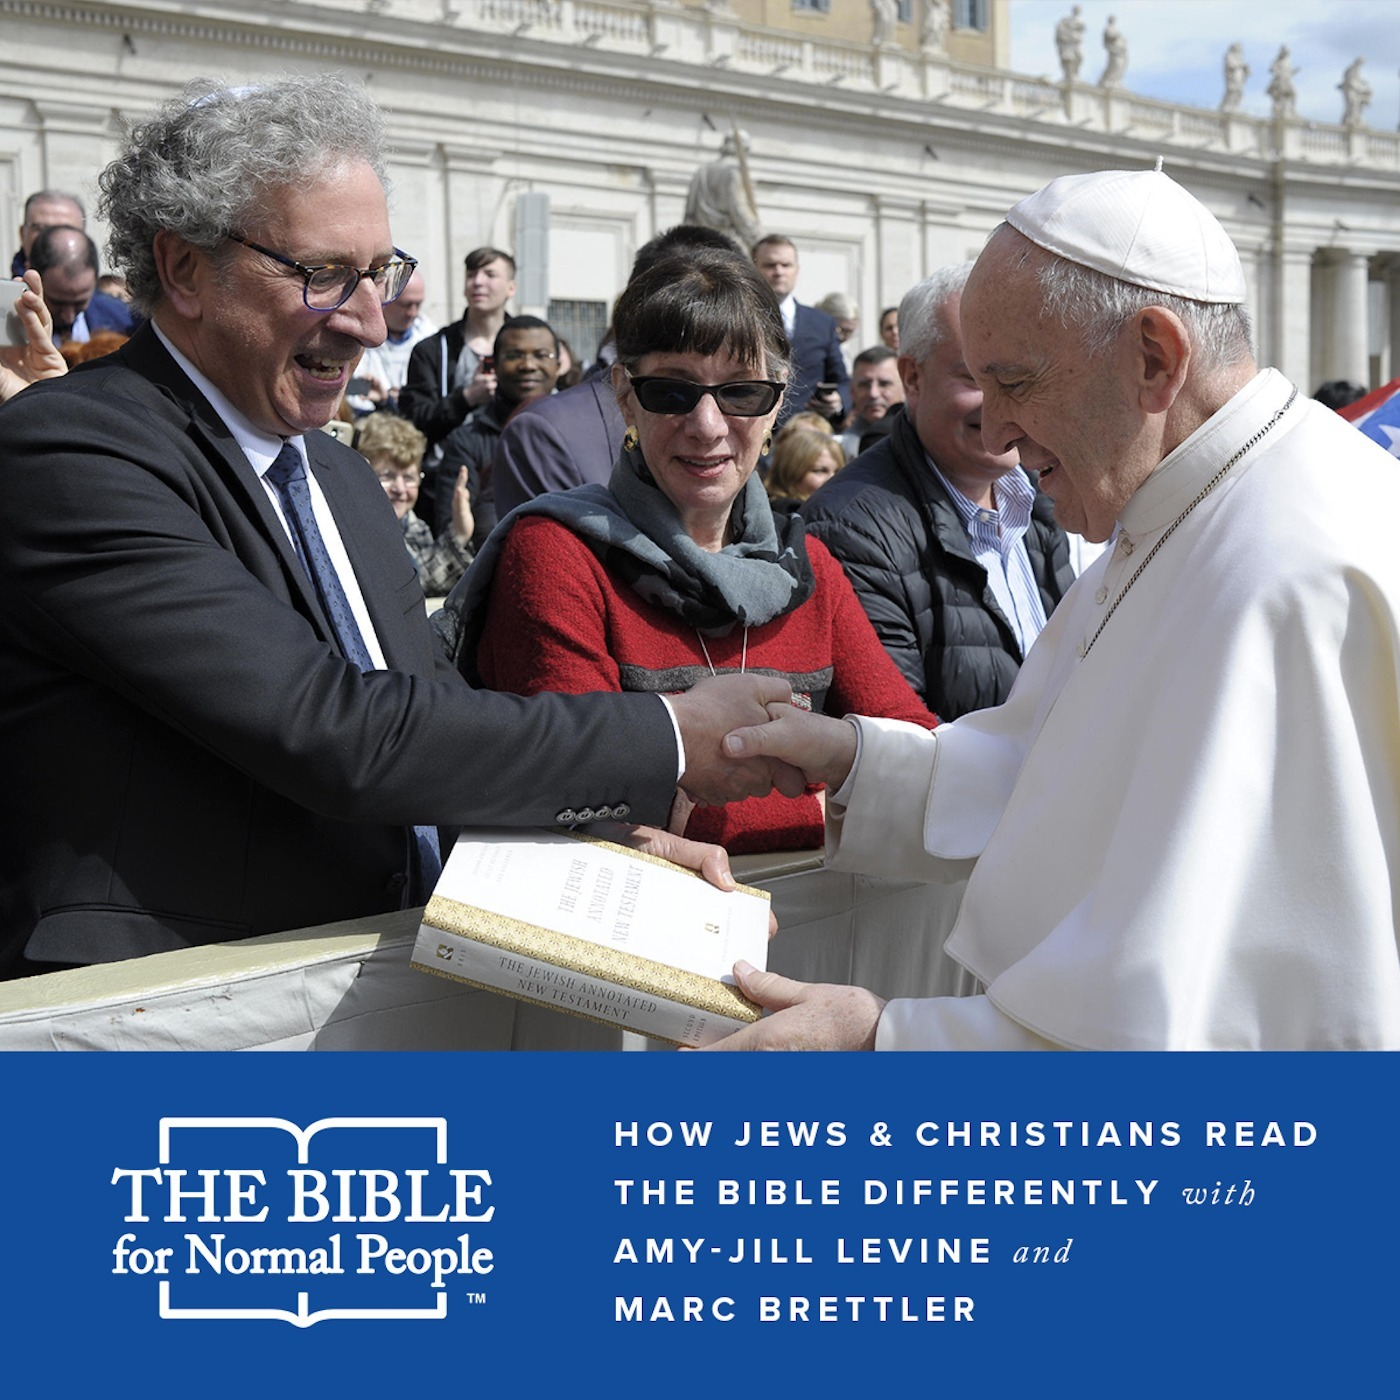 Episode 154: Amy-Jill Levine and Marc Brettler - How Jews & Christians Read the Bible Differently